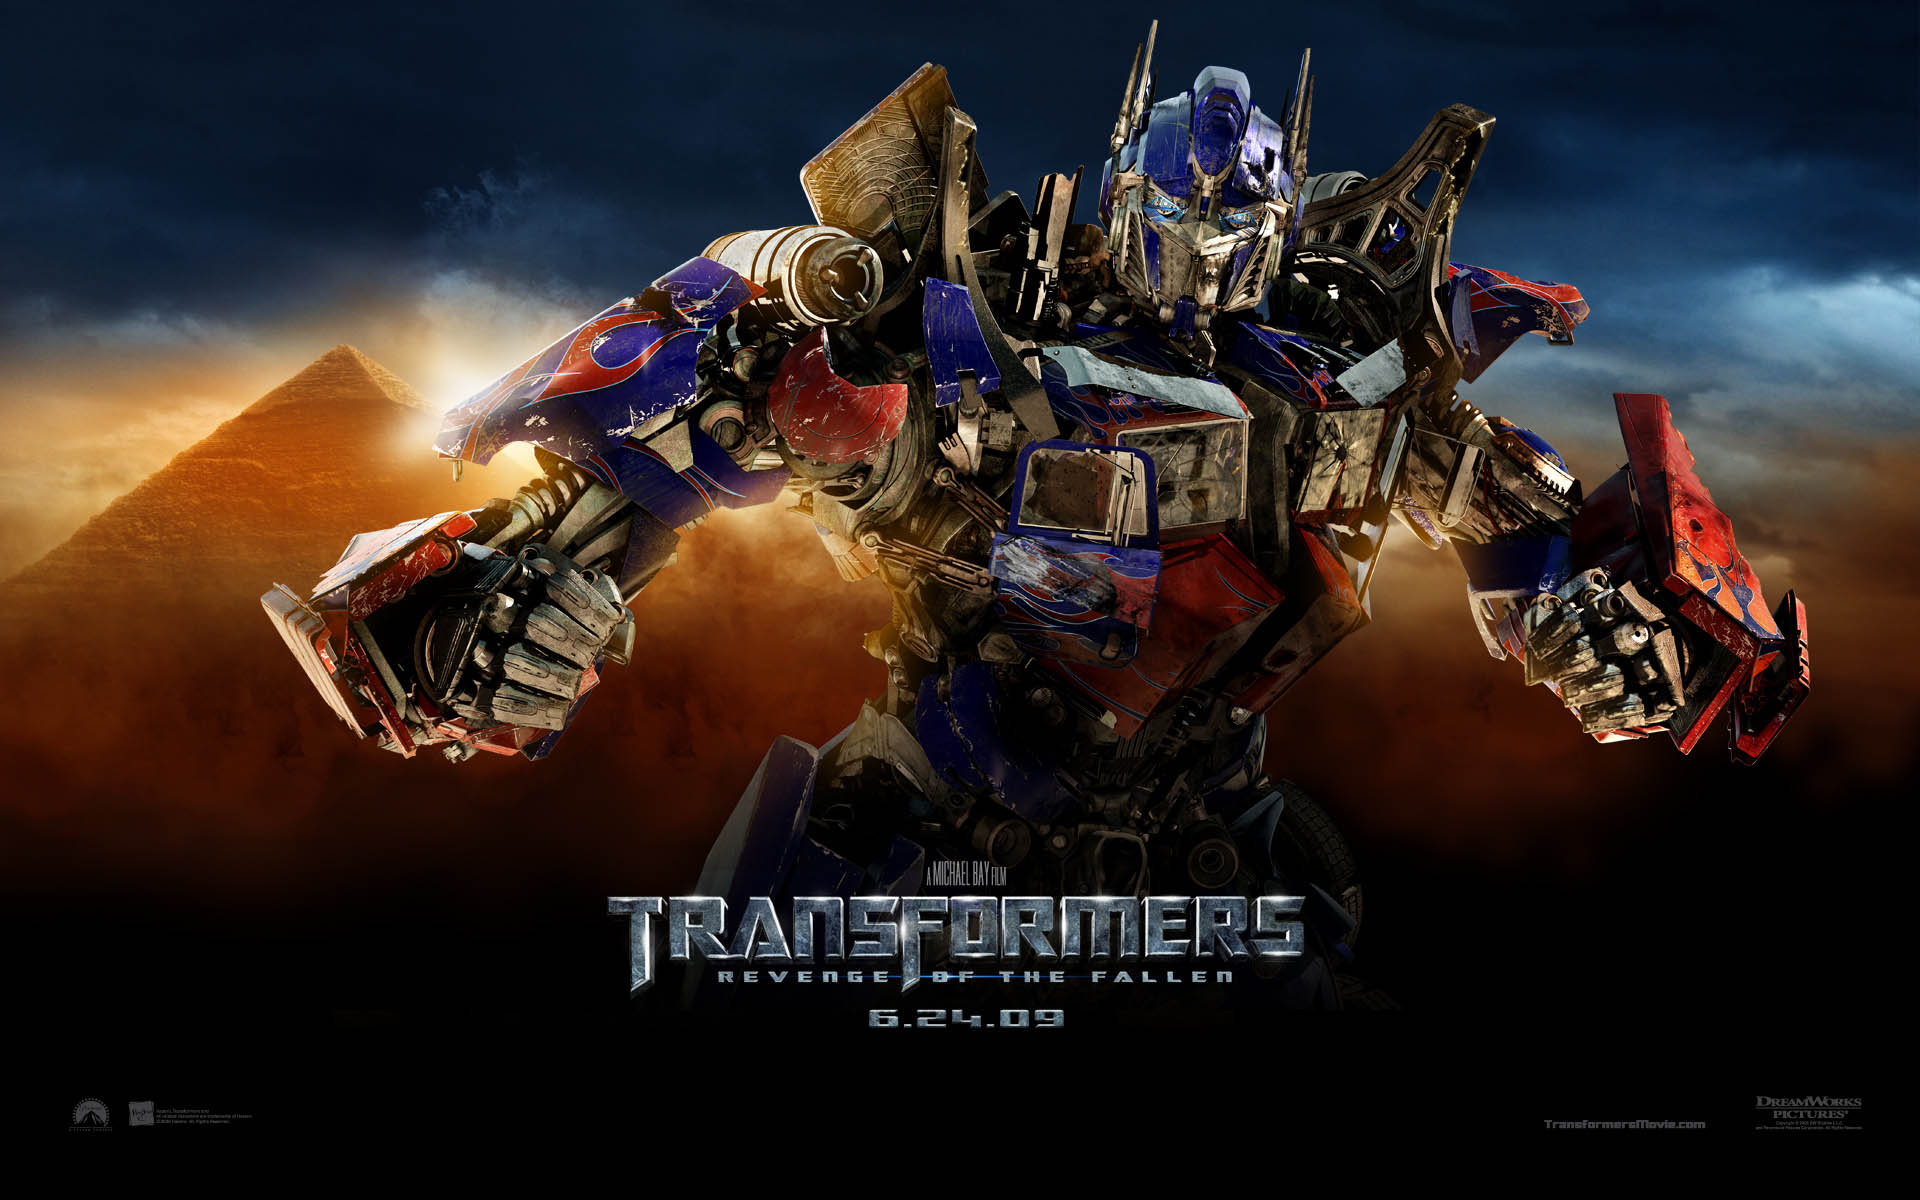 optimus prime wallpaper download - photo #12